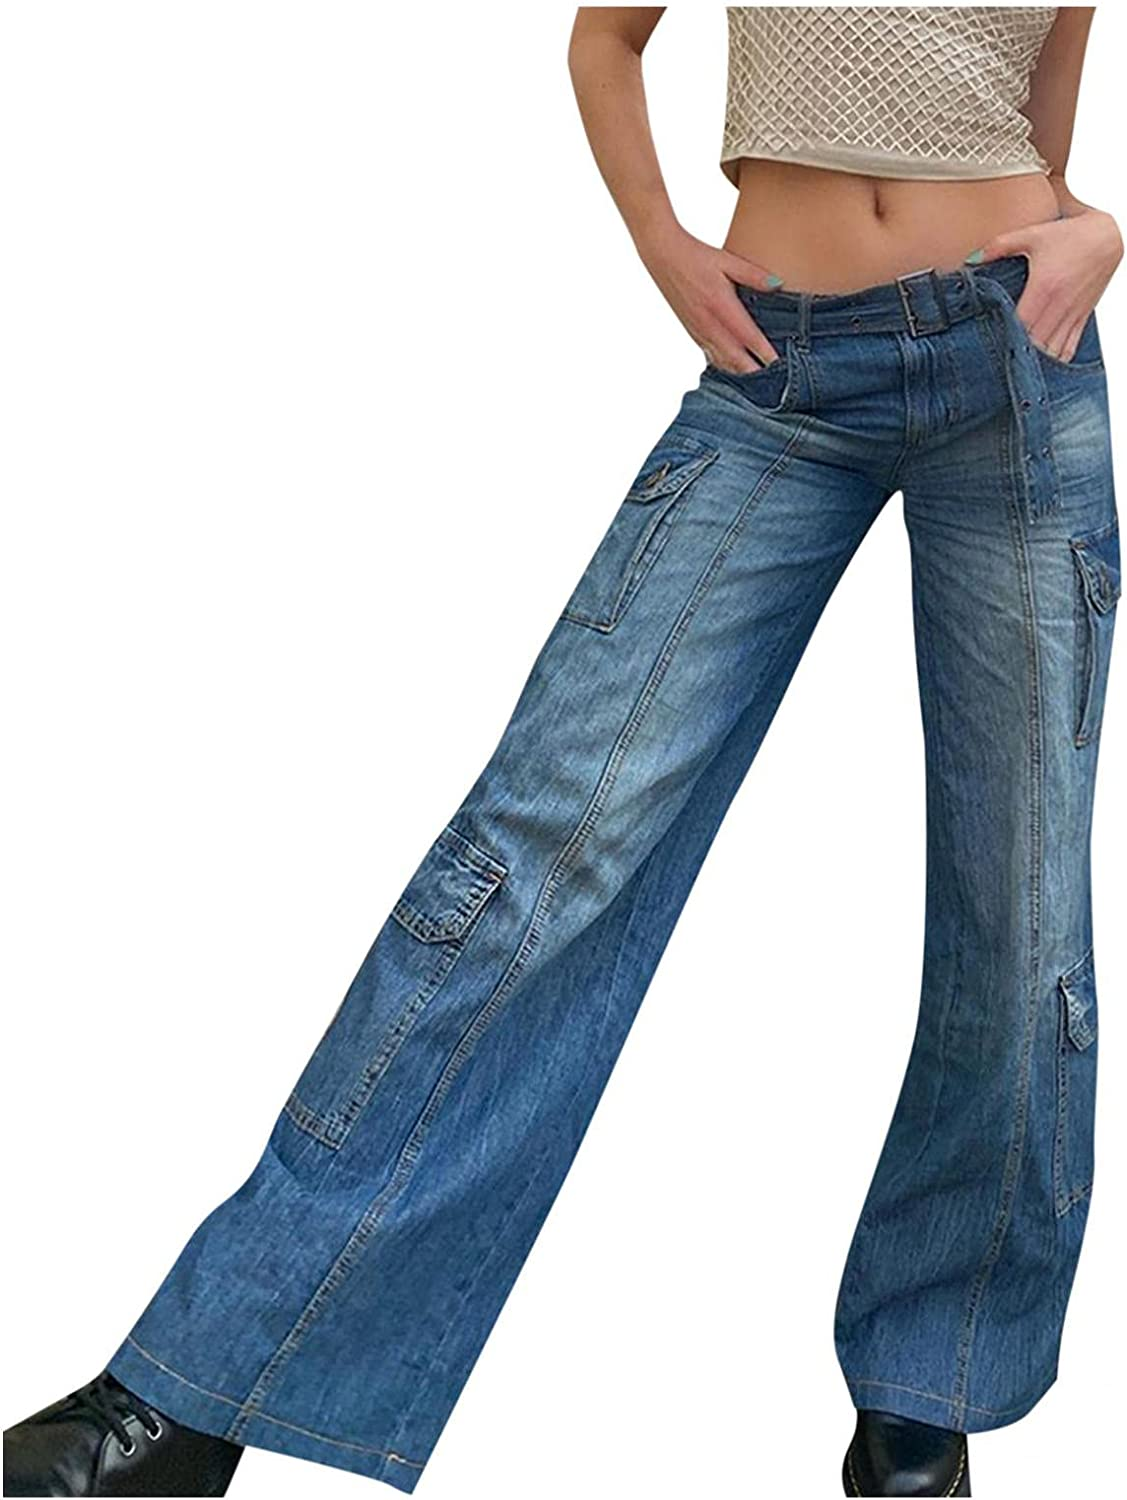 Y2K Fashion Jeans for Women High Waisted Stretch Casual Distressed Straight Jeans Vintage Baggy Denim Pants Trousers